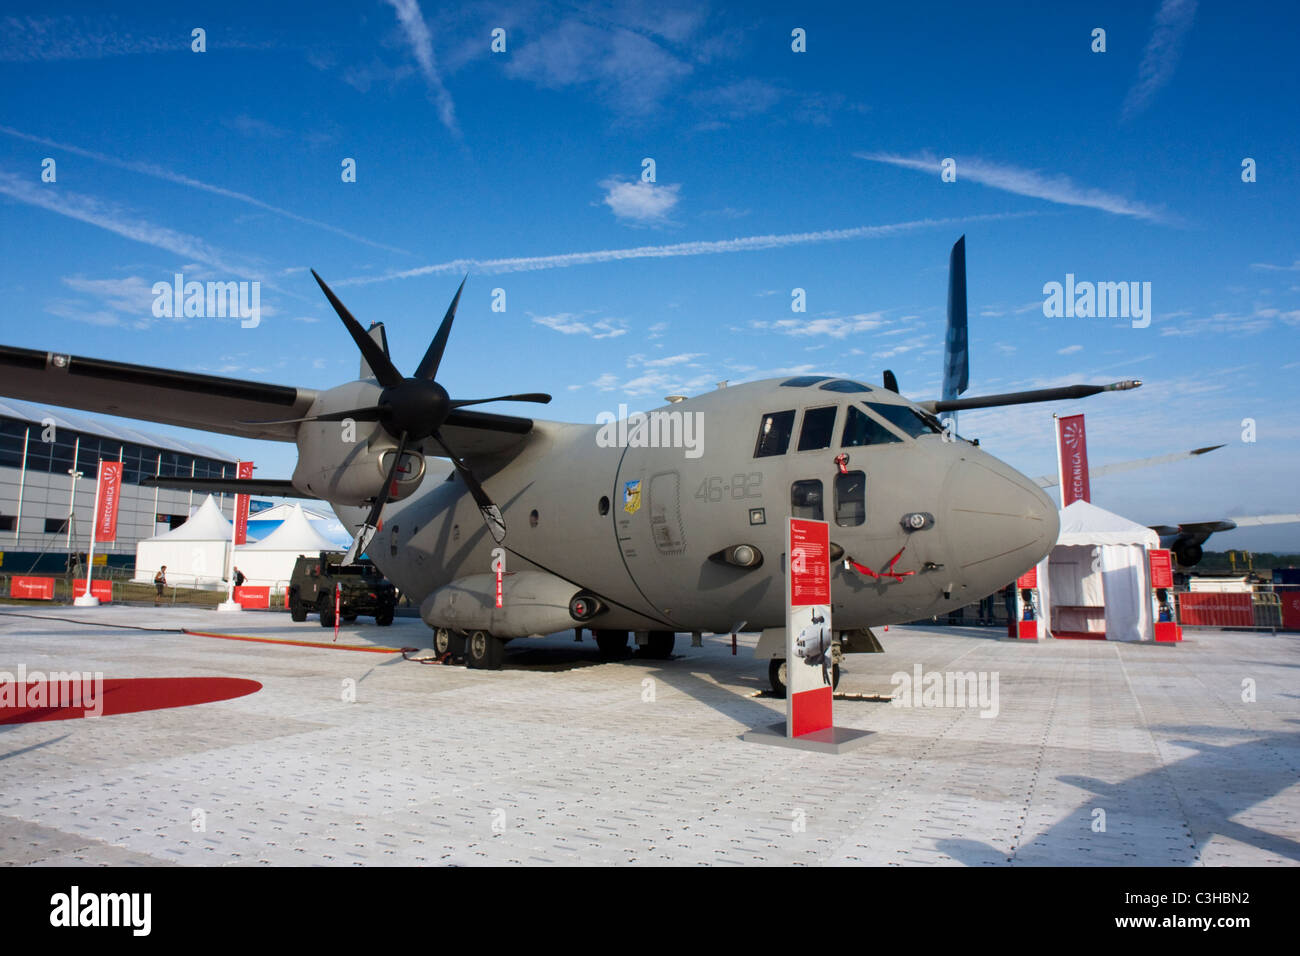 Italy Air Force Alenia C-27J Spartan from 46 Squadron based at Pisa/San Giusto AB at Farnborough Airshow 2010, UK. Stock Photo